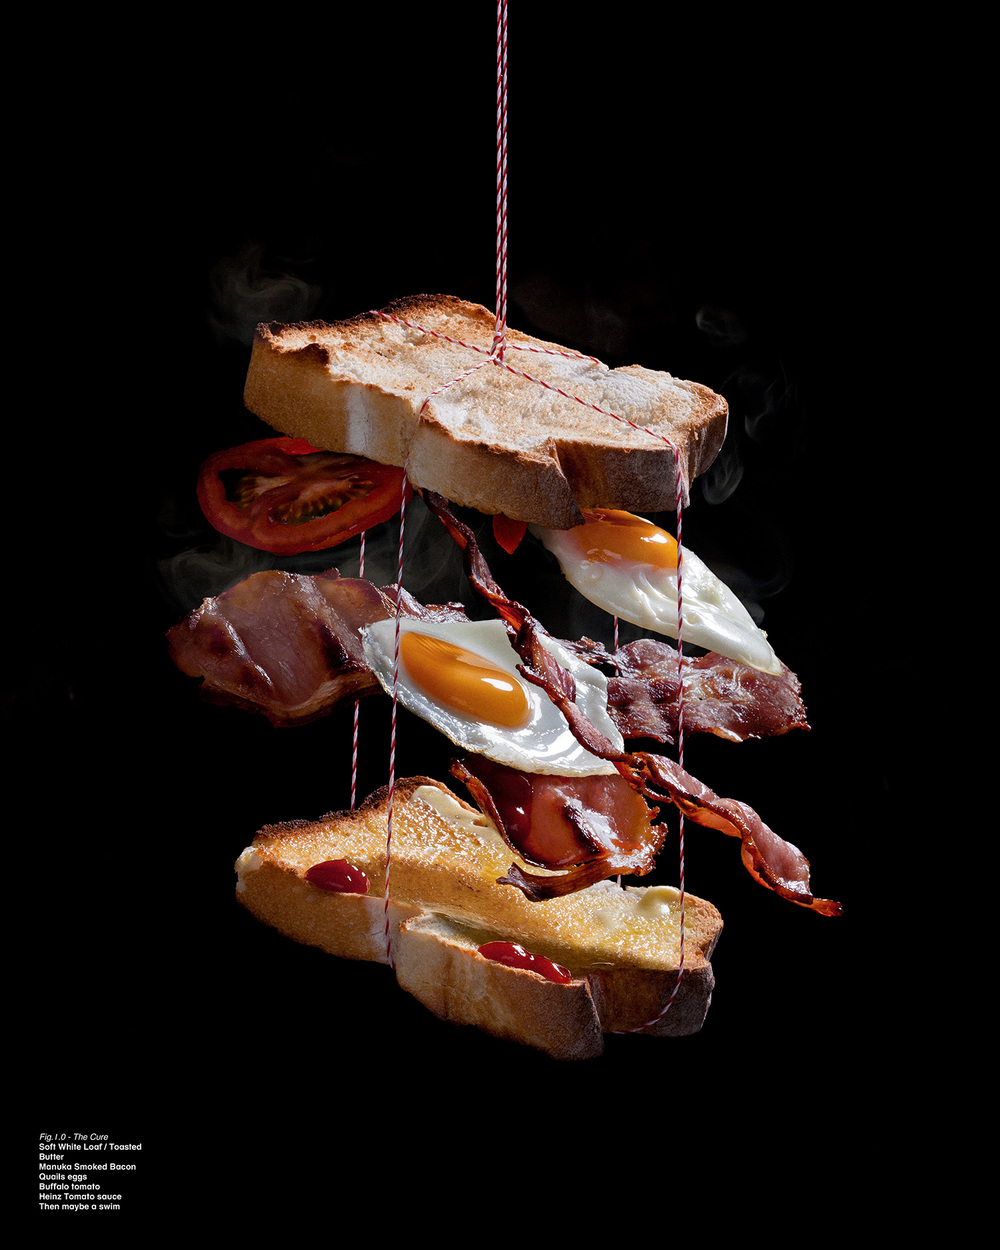 Hang Over  Agency: Maud  Art Director: David Park  Sandwich Wrangler: Ben Crick